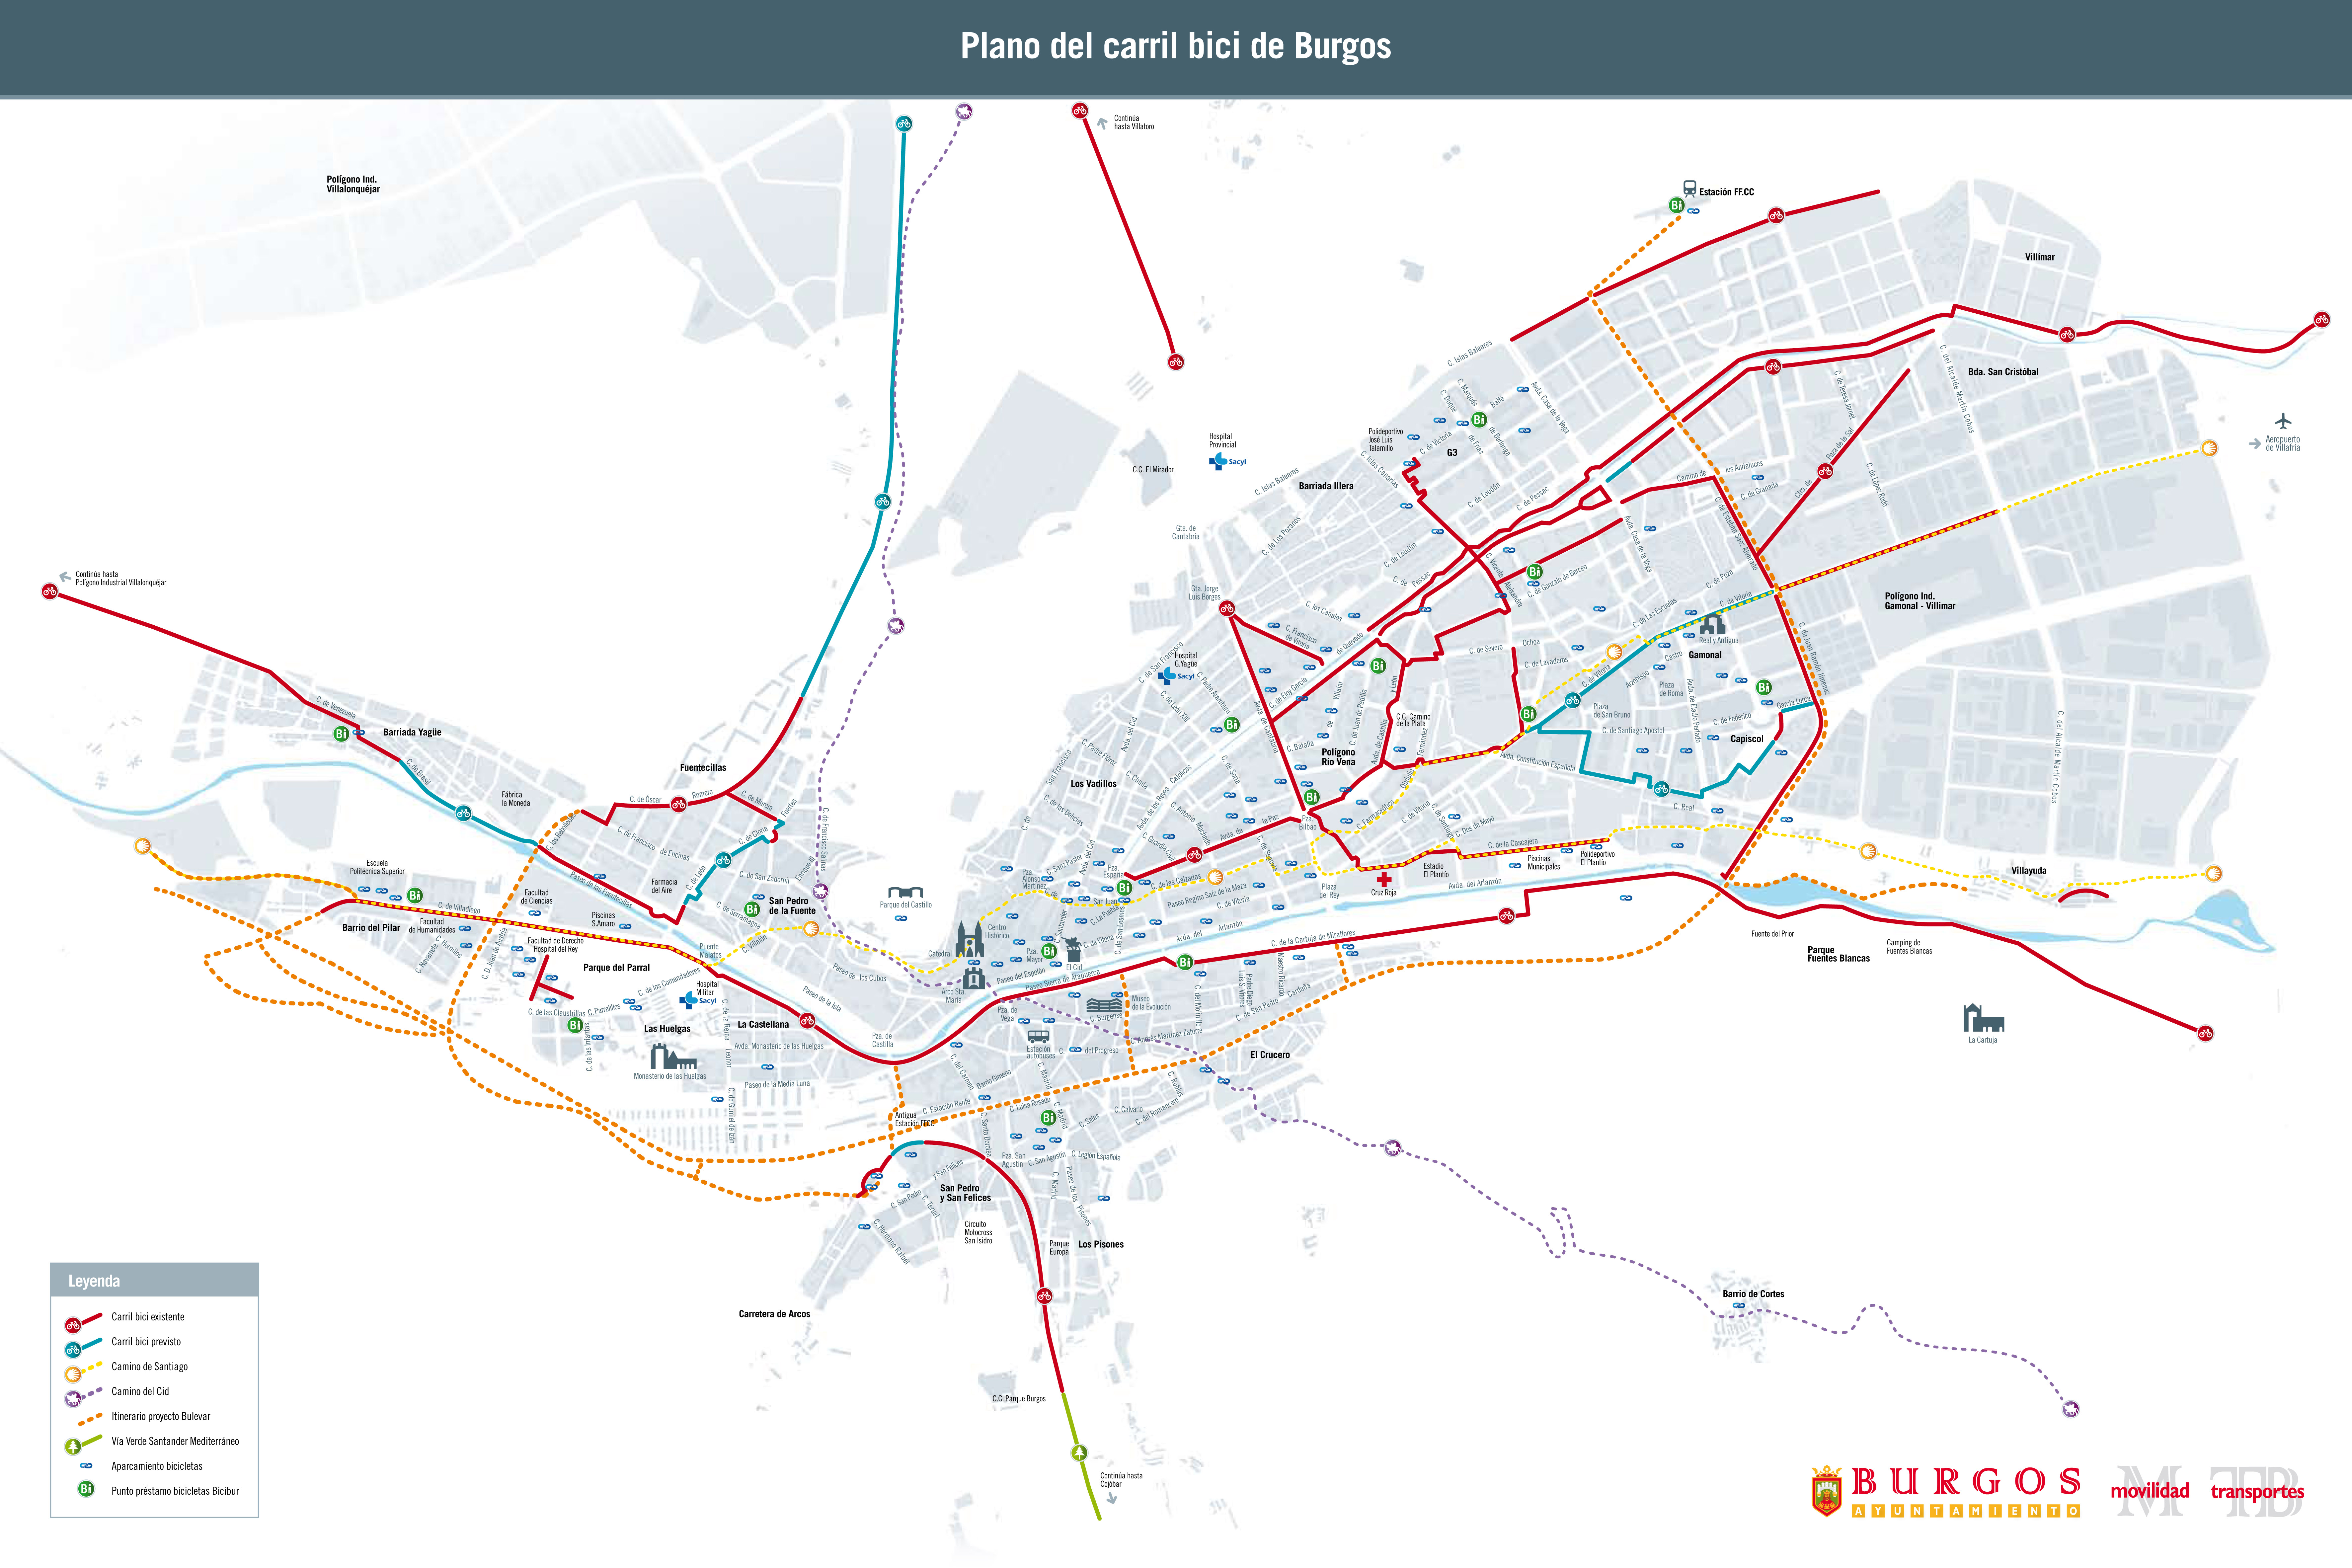 Bike routes and paths in Burgos 2010